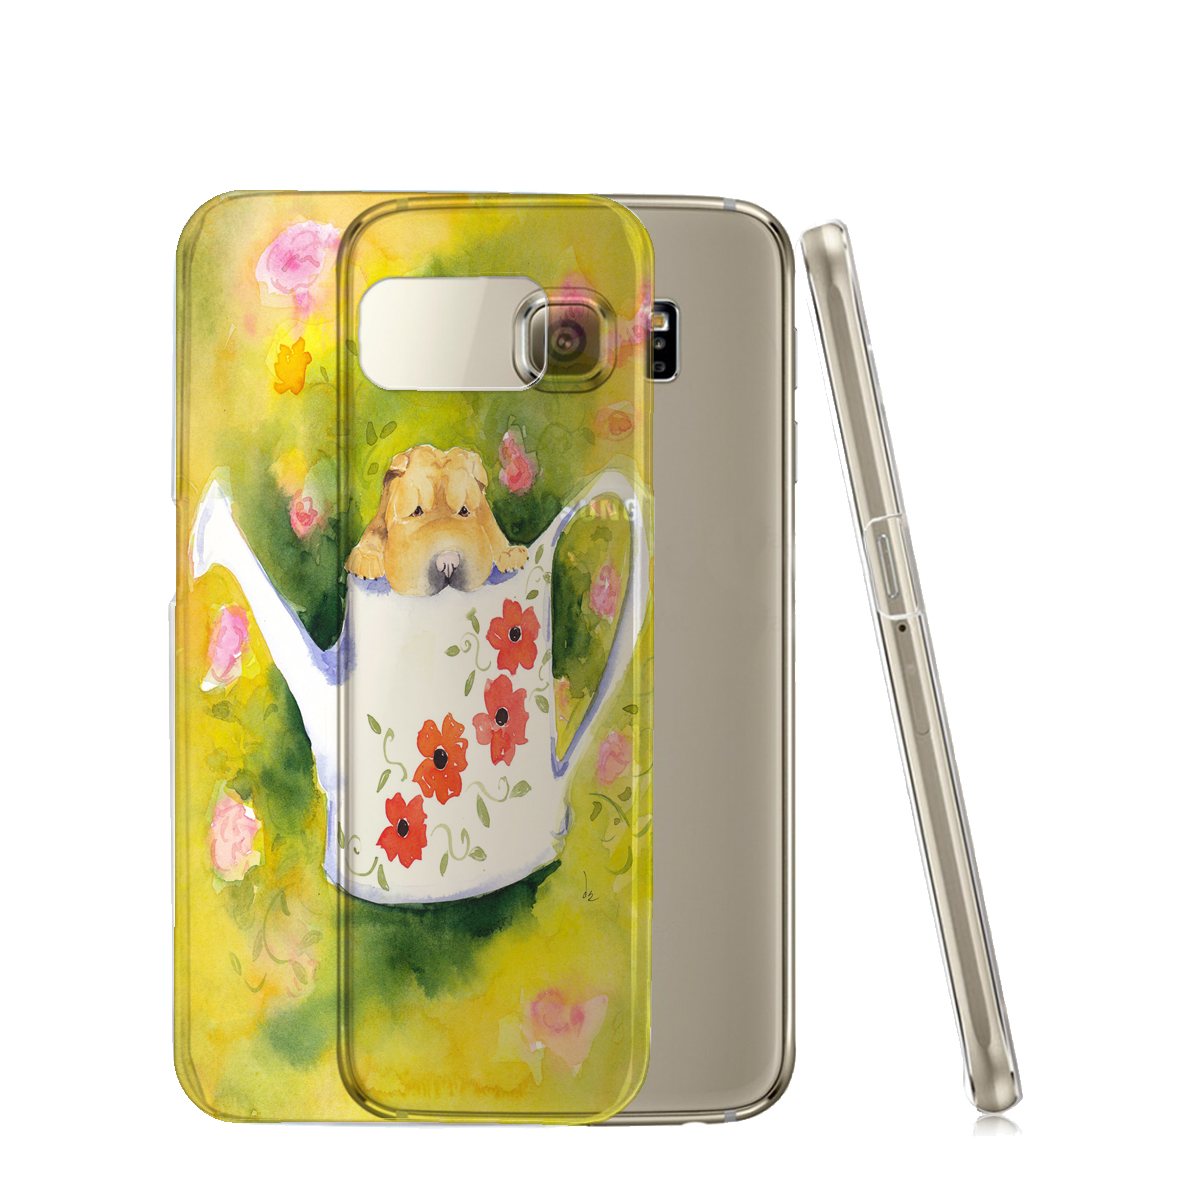 KuzmarK™ Samsung Galaxy S6 Edge Clear Cover Case - Chinese Shar-Pei Puppy in Watering Can with Flowers Art by Denise Every